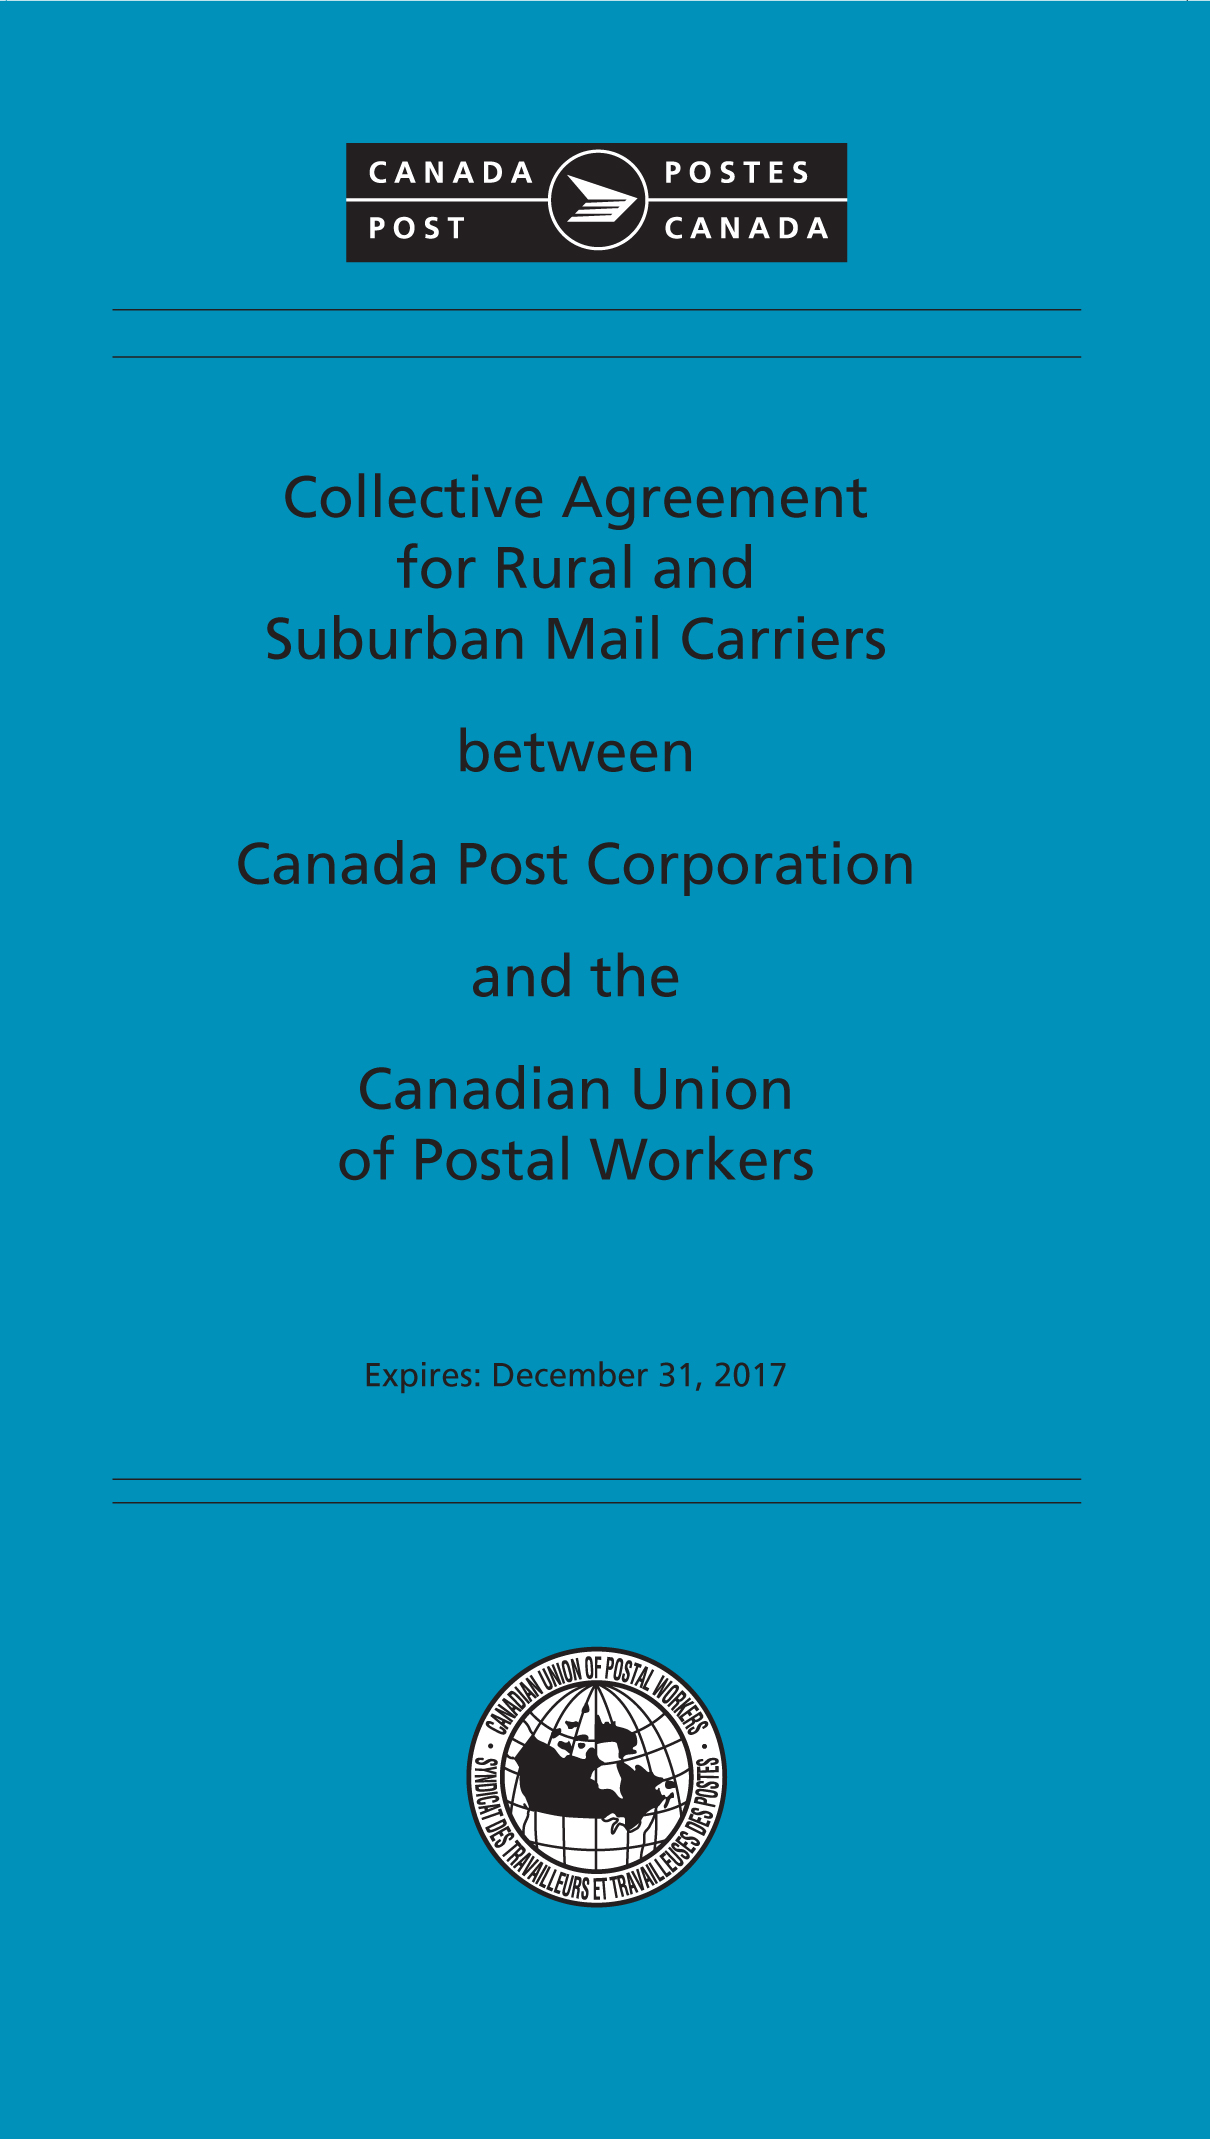 Rural and suburban mail carriers canadian union of postal workers collective agreement for rural and suburban mail carriers between canada post corporation and the canadian union madrichimfo Gallery